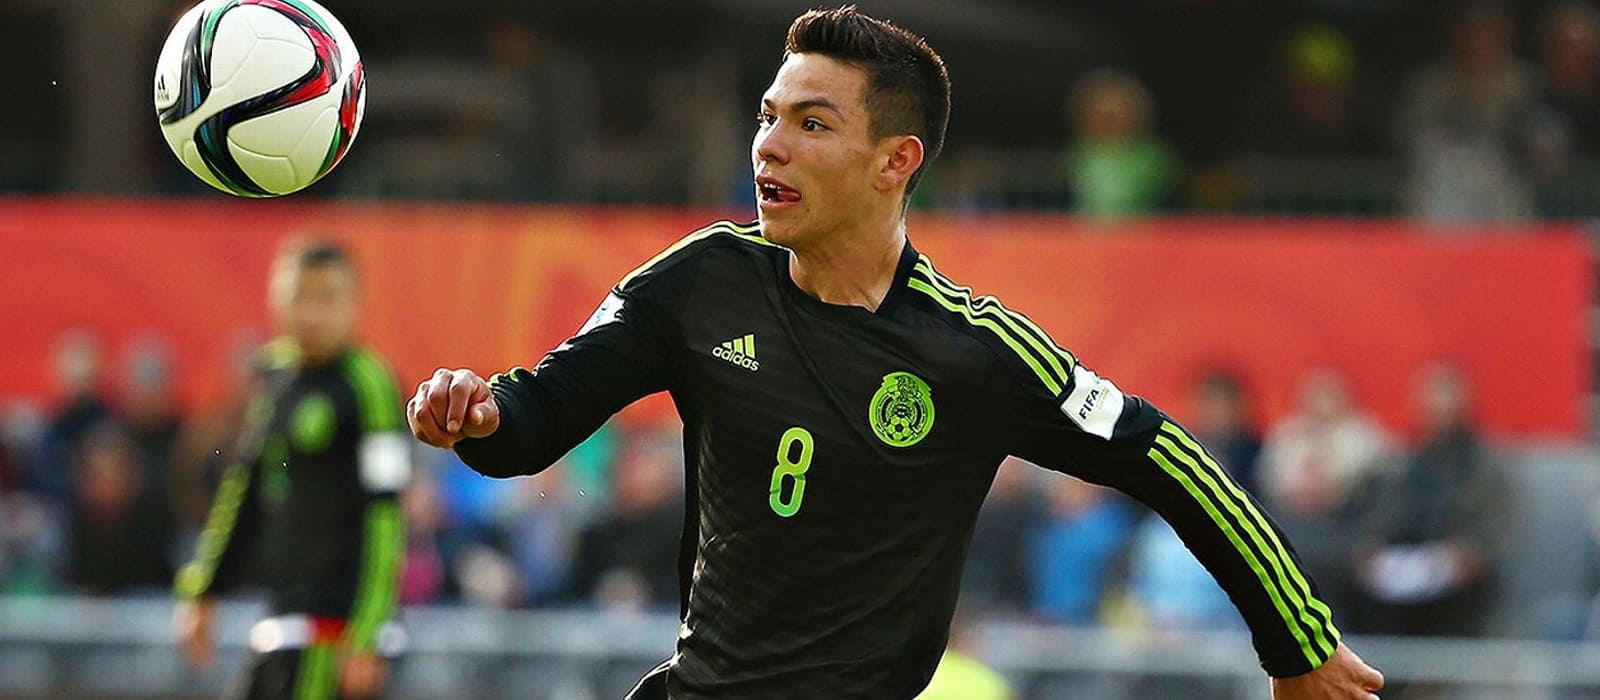 Pachuca manager says Manchester United have 'nothing' with Hirving Lozano